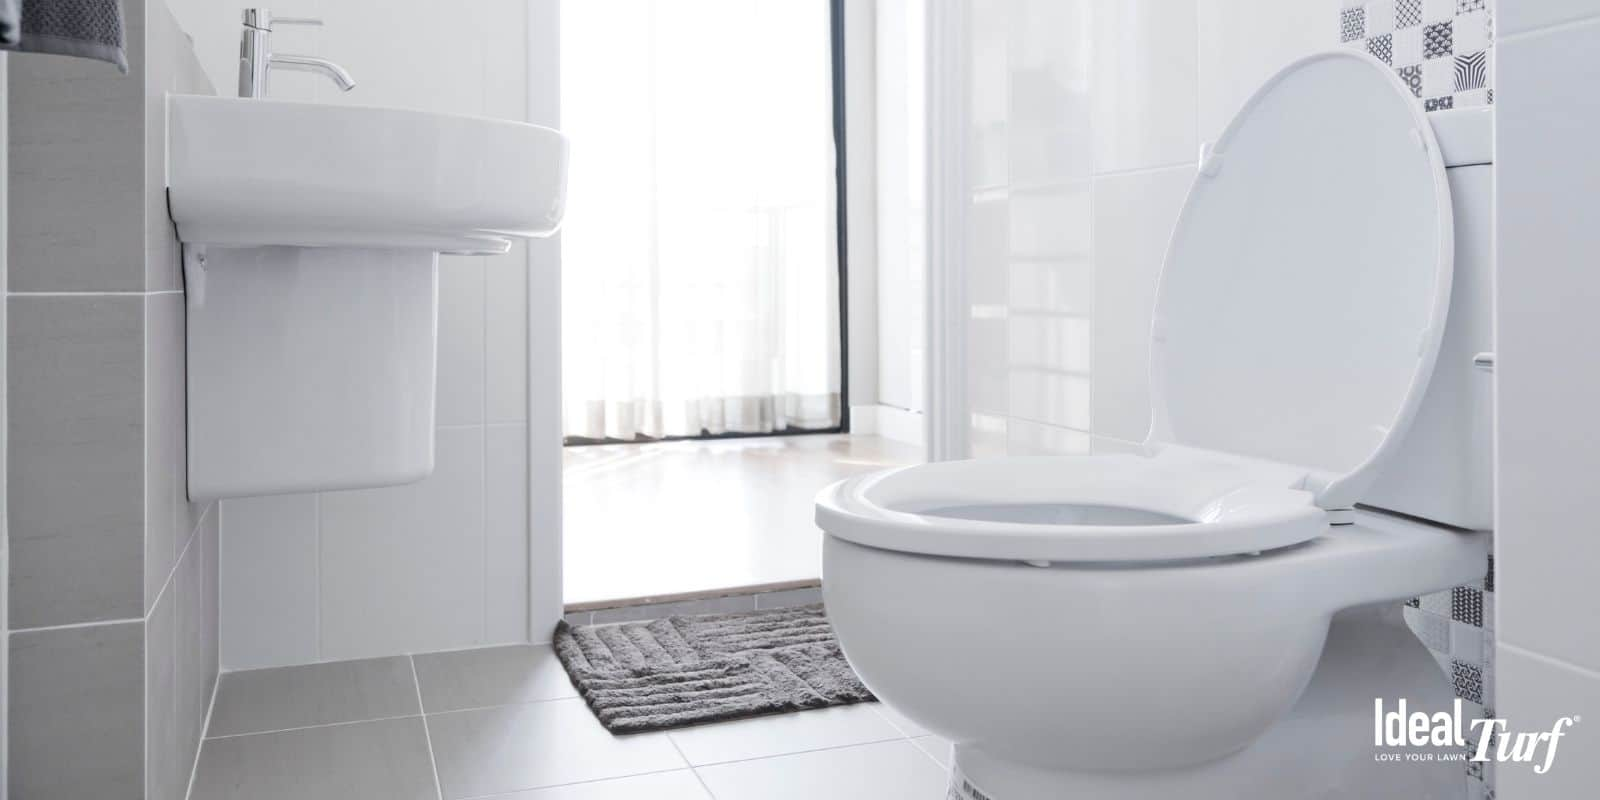 Install a Low-Flow Toilet